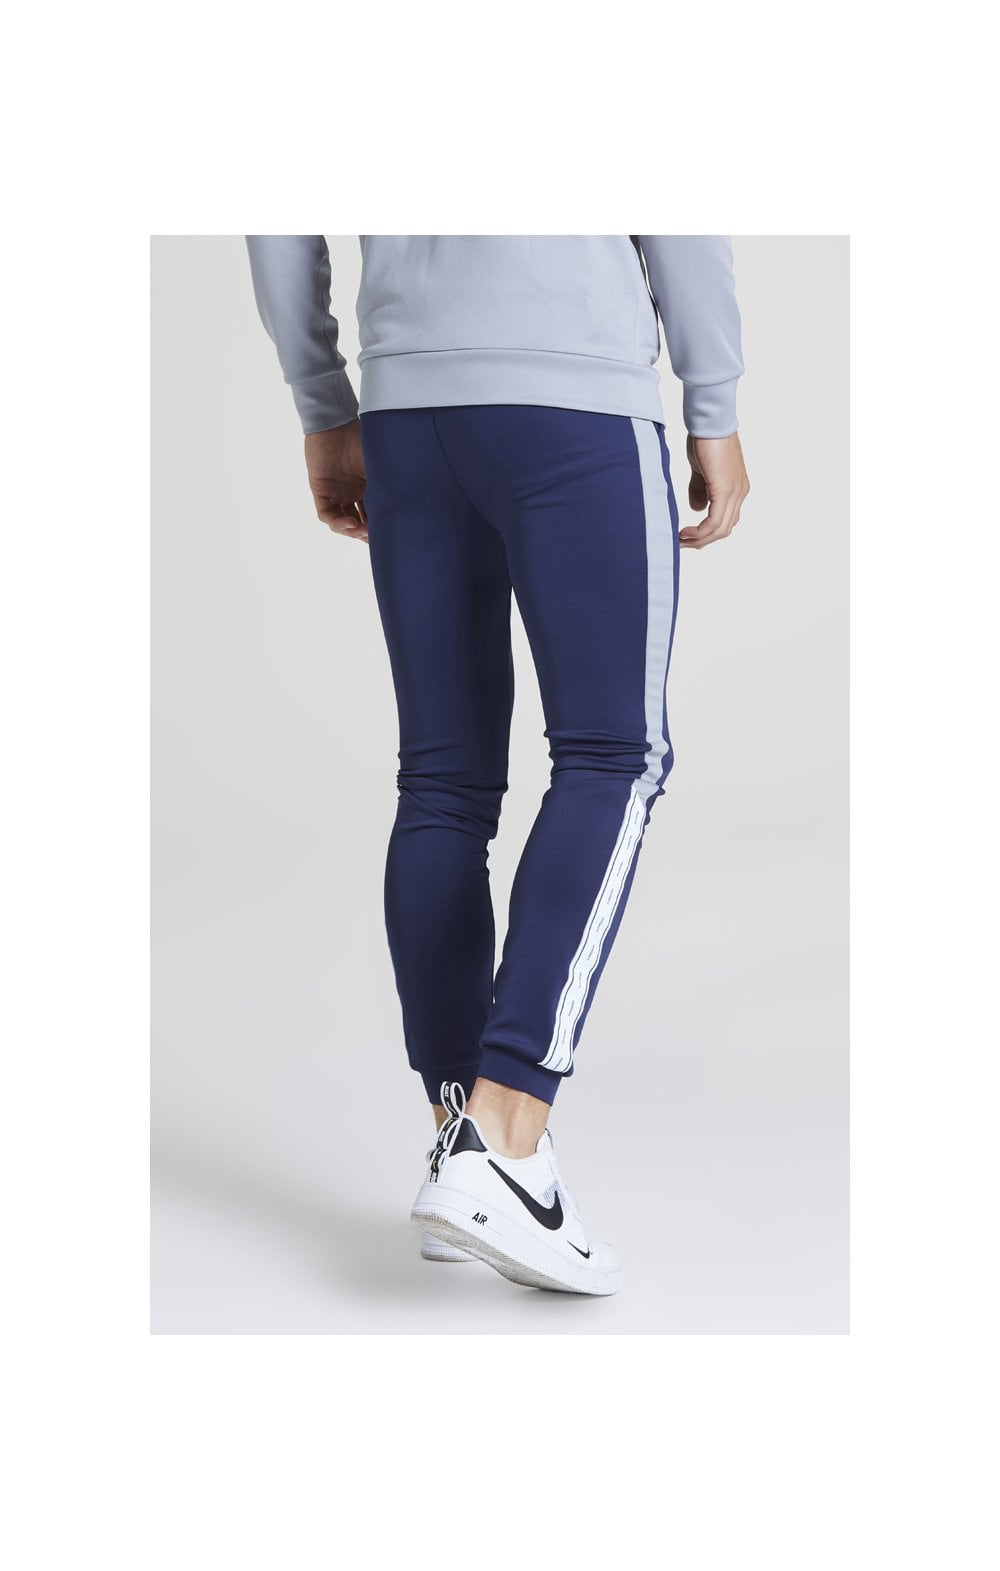 Illusive London Taped Joggers - Navy & Grey (2)